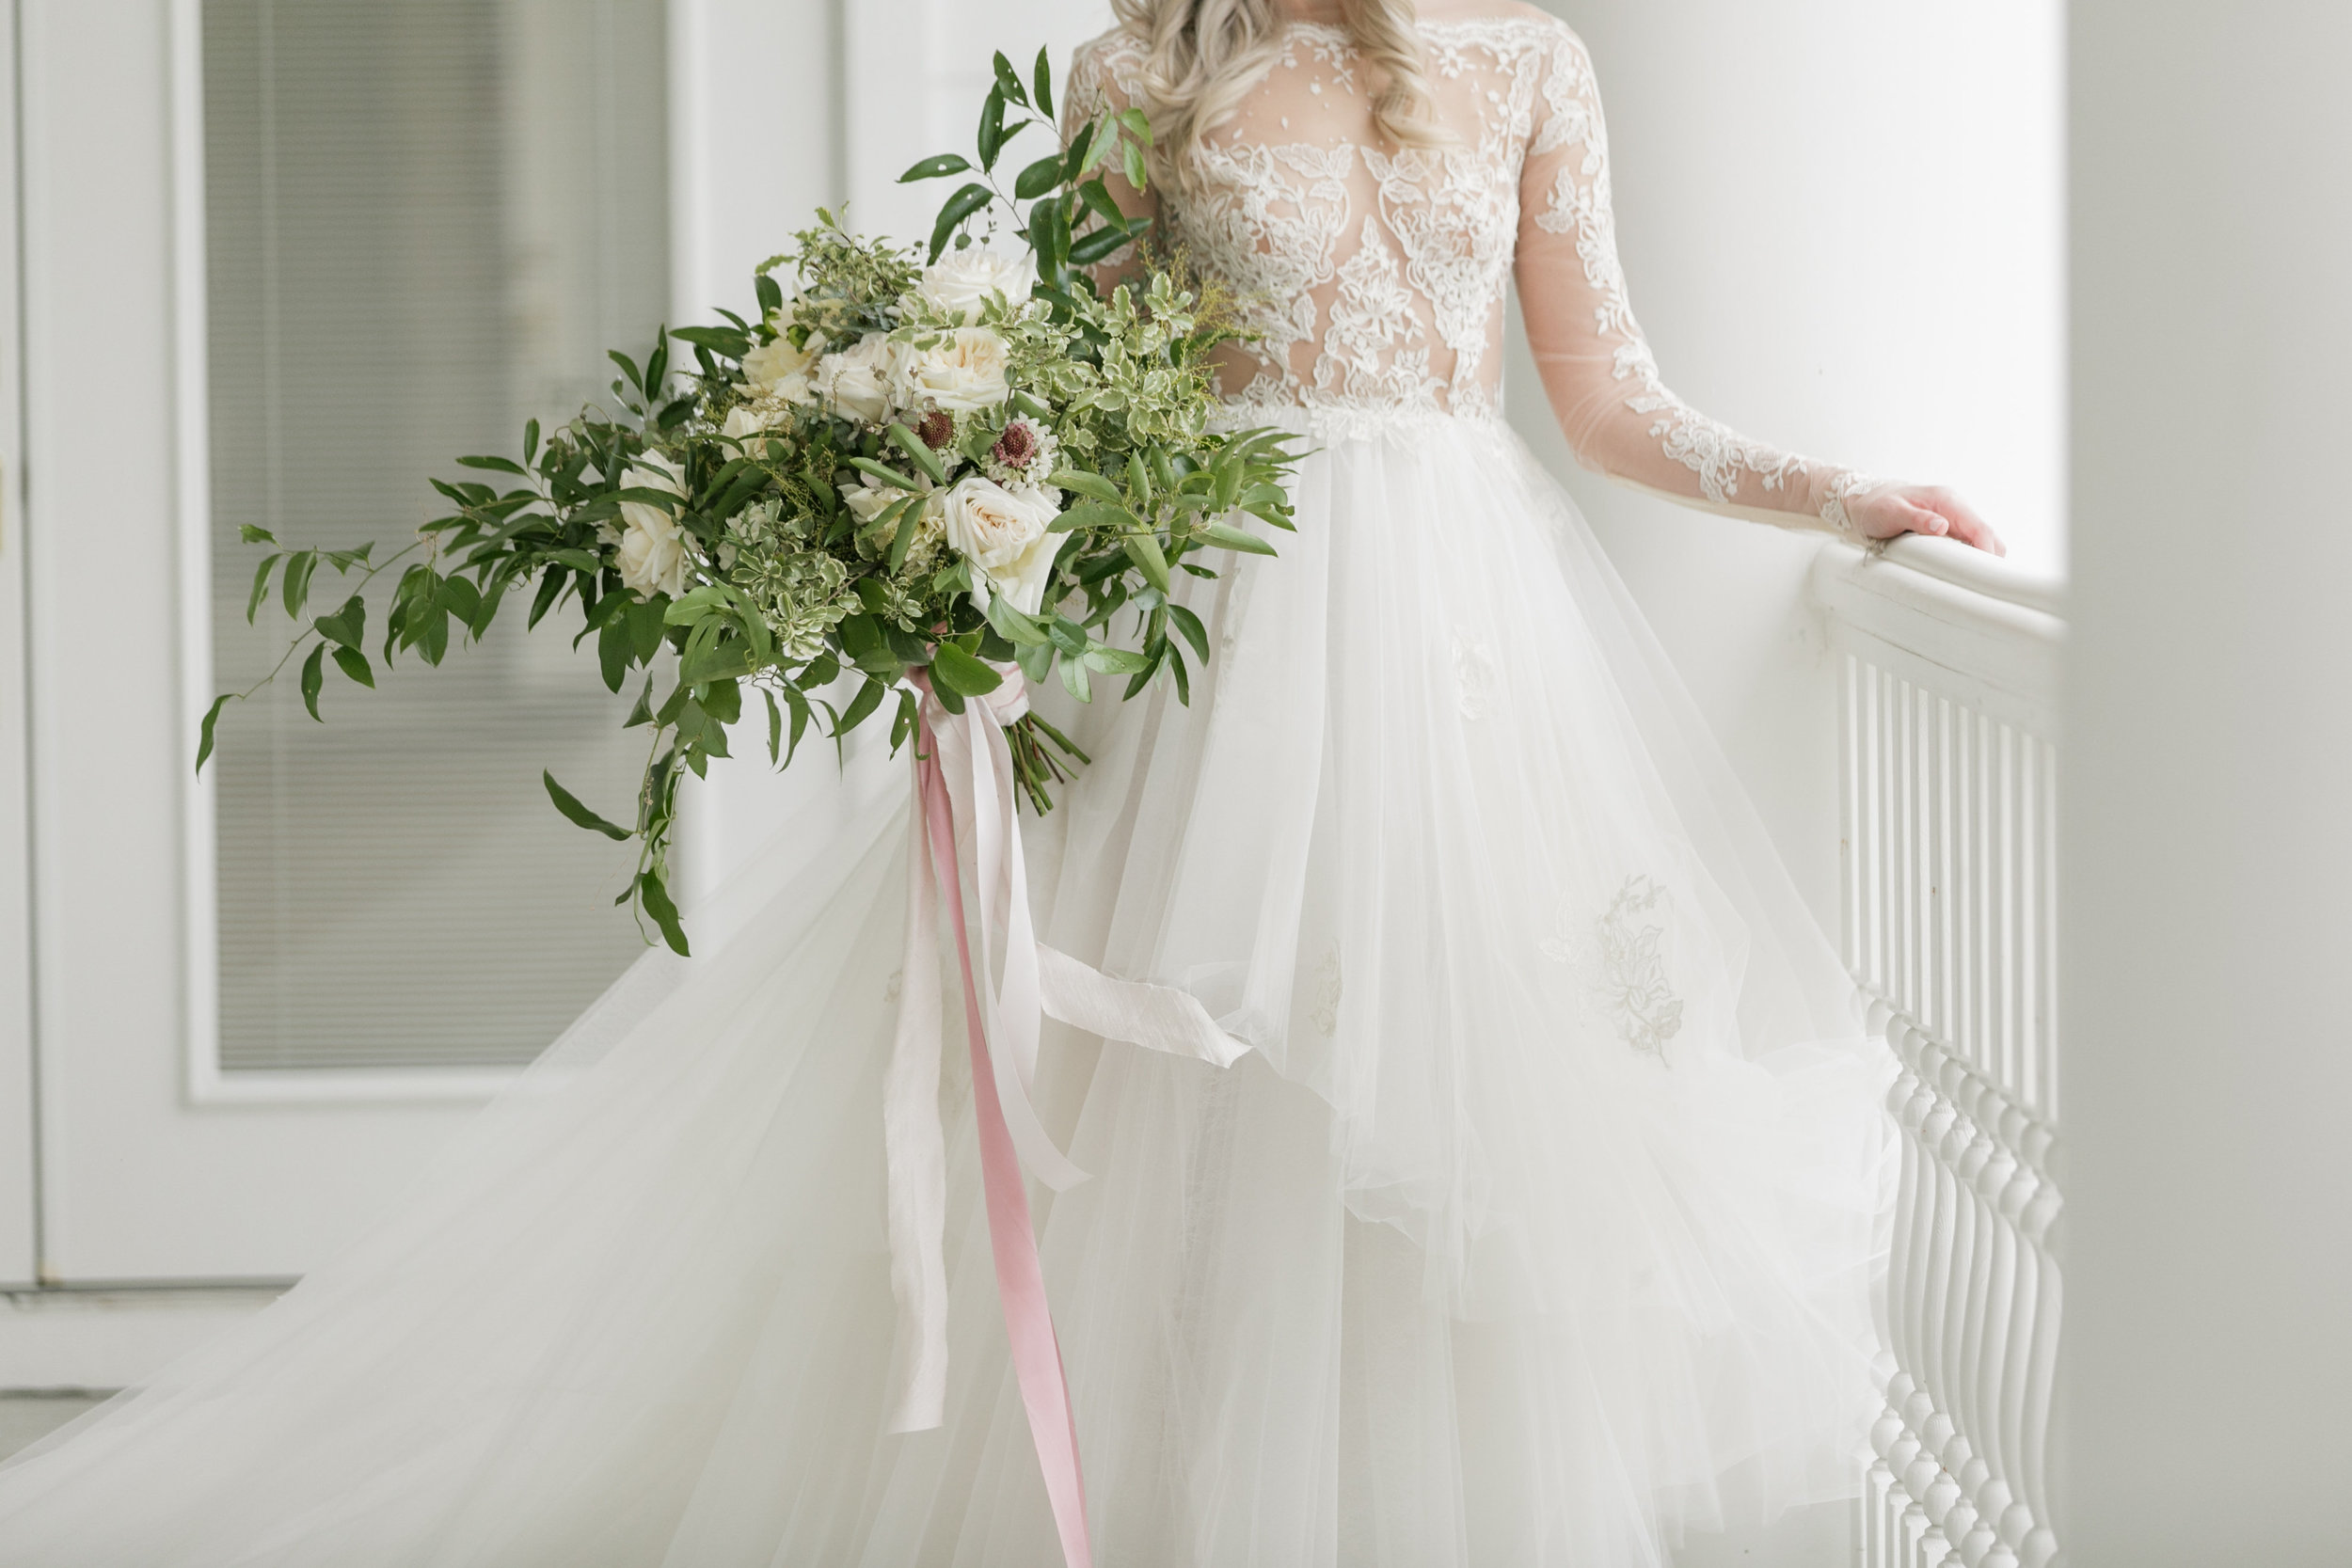 Bluegrass Chic - Bumby Photography